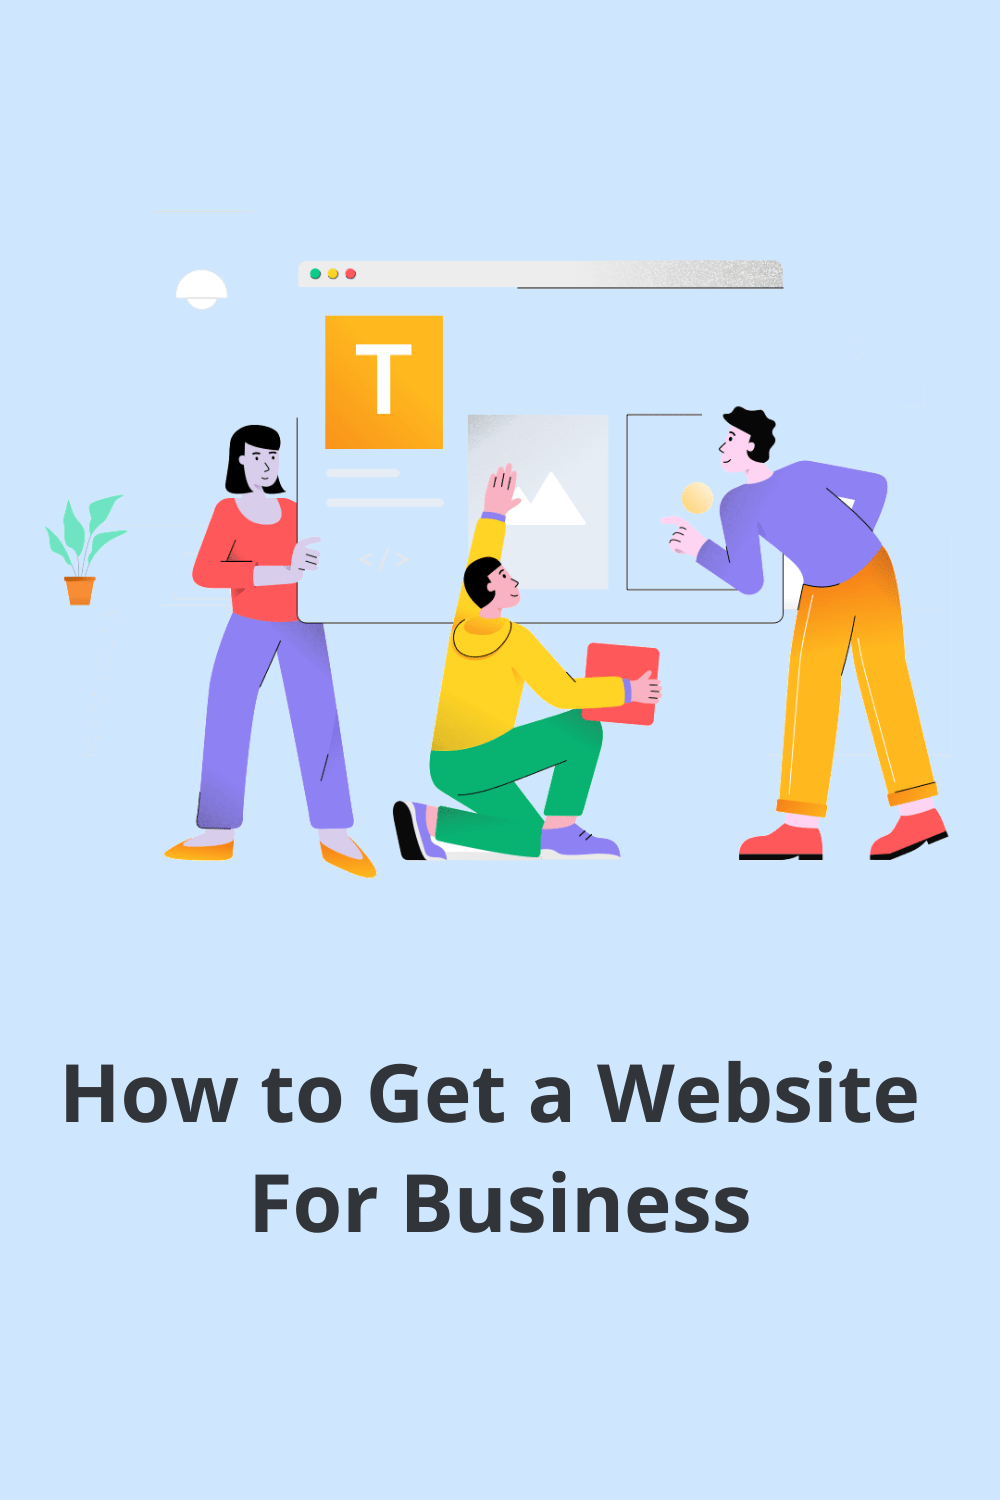 Creating a website can be tricky, but with the help of professional web design agency, you can create a visually appealing website that can earn you more leads! via @scopedesign